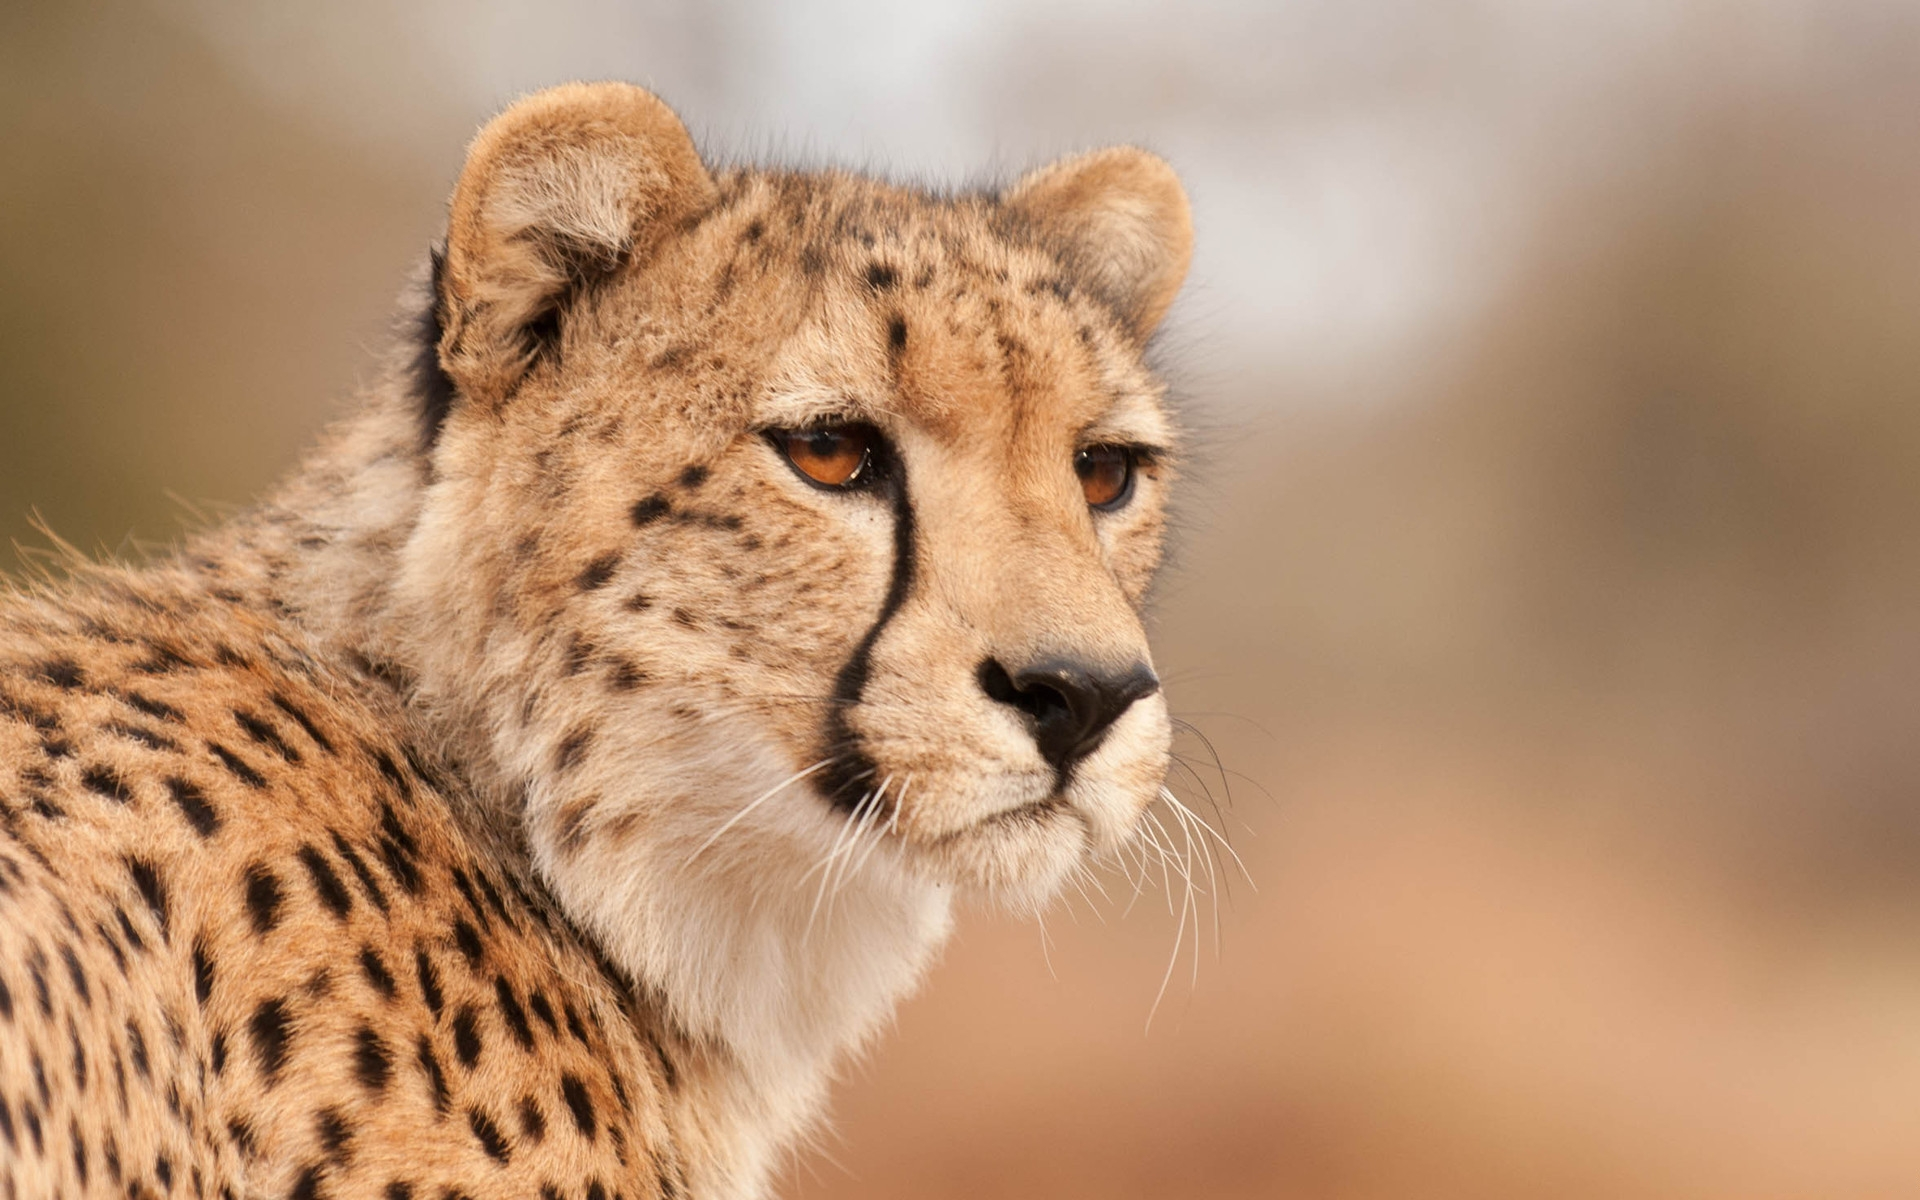 Cheetah full hd wallpaper and background image 1920x1200 id276219 animal cheetah wallpaper voltagebd Image collections